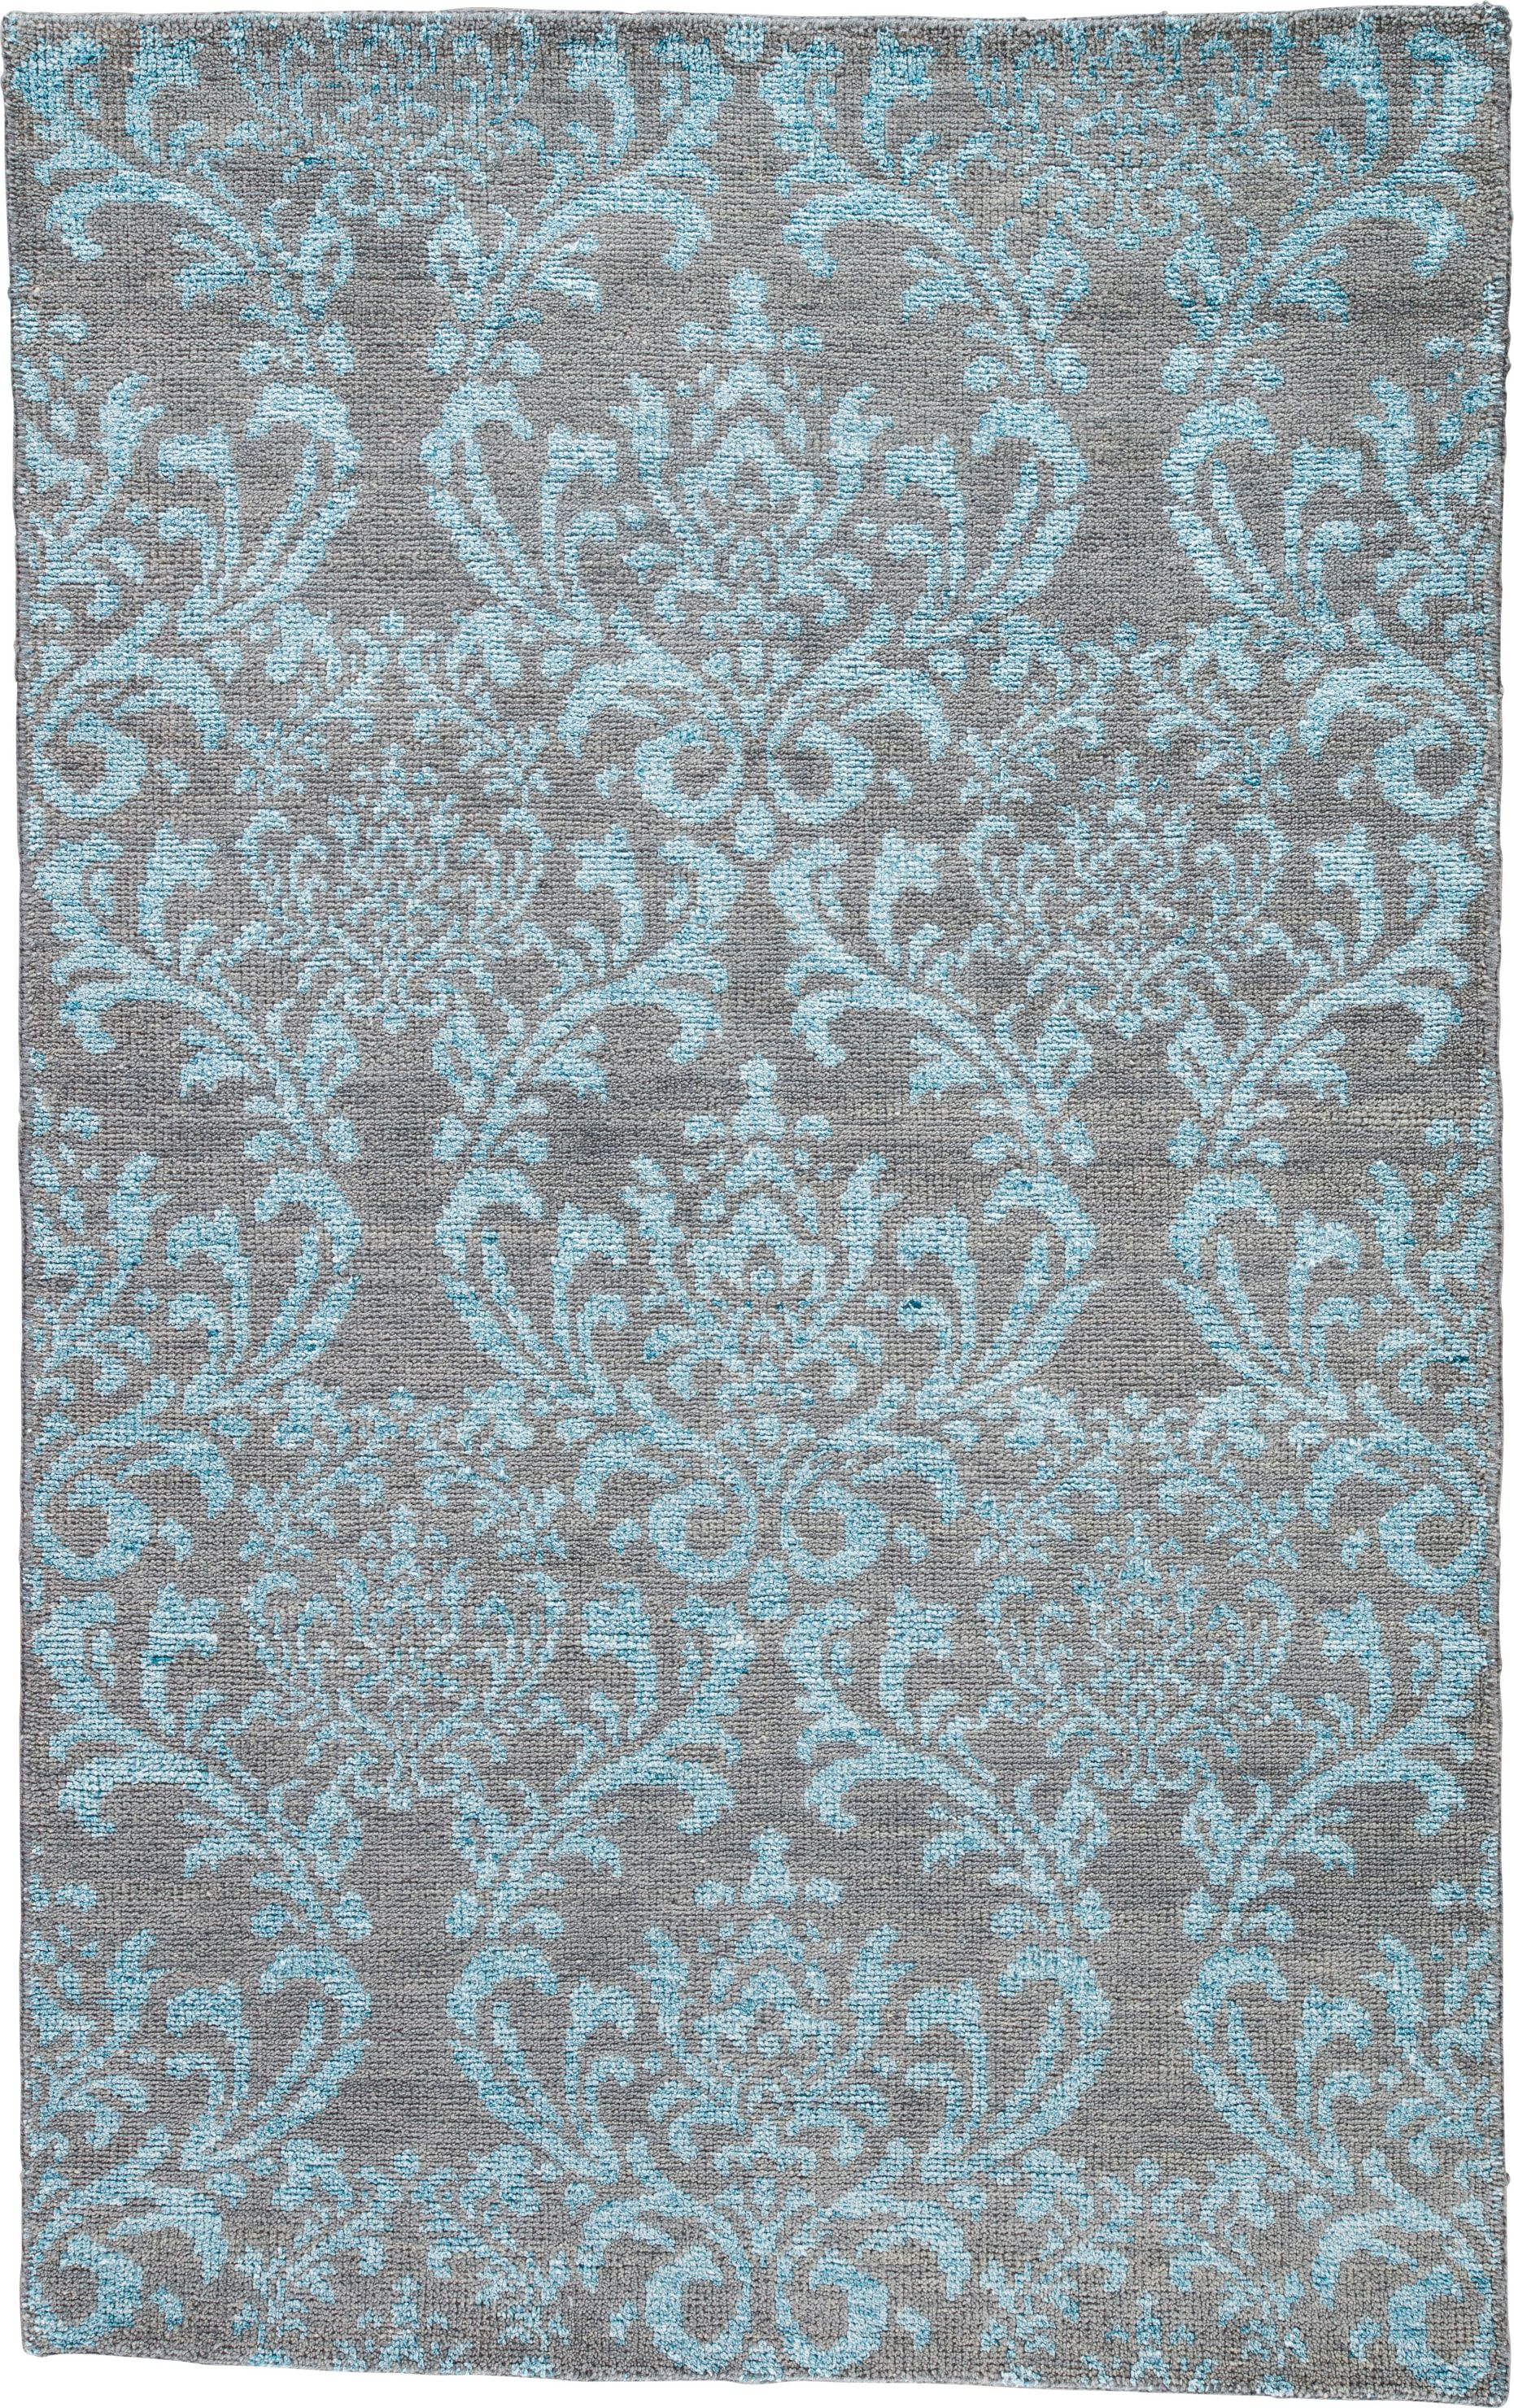 Hillier Rug On Plushrugs Com Free Shipping On All Orders Arearugs Homedecor Homesweethome Farmhouse Roomi Turquoise Rug Jaipur Living Floral Area Rugs